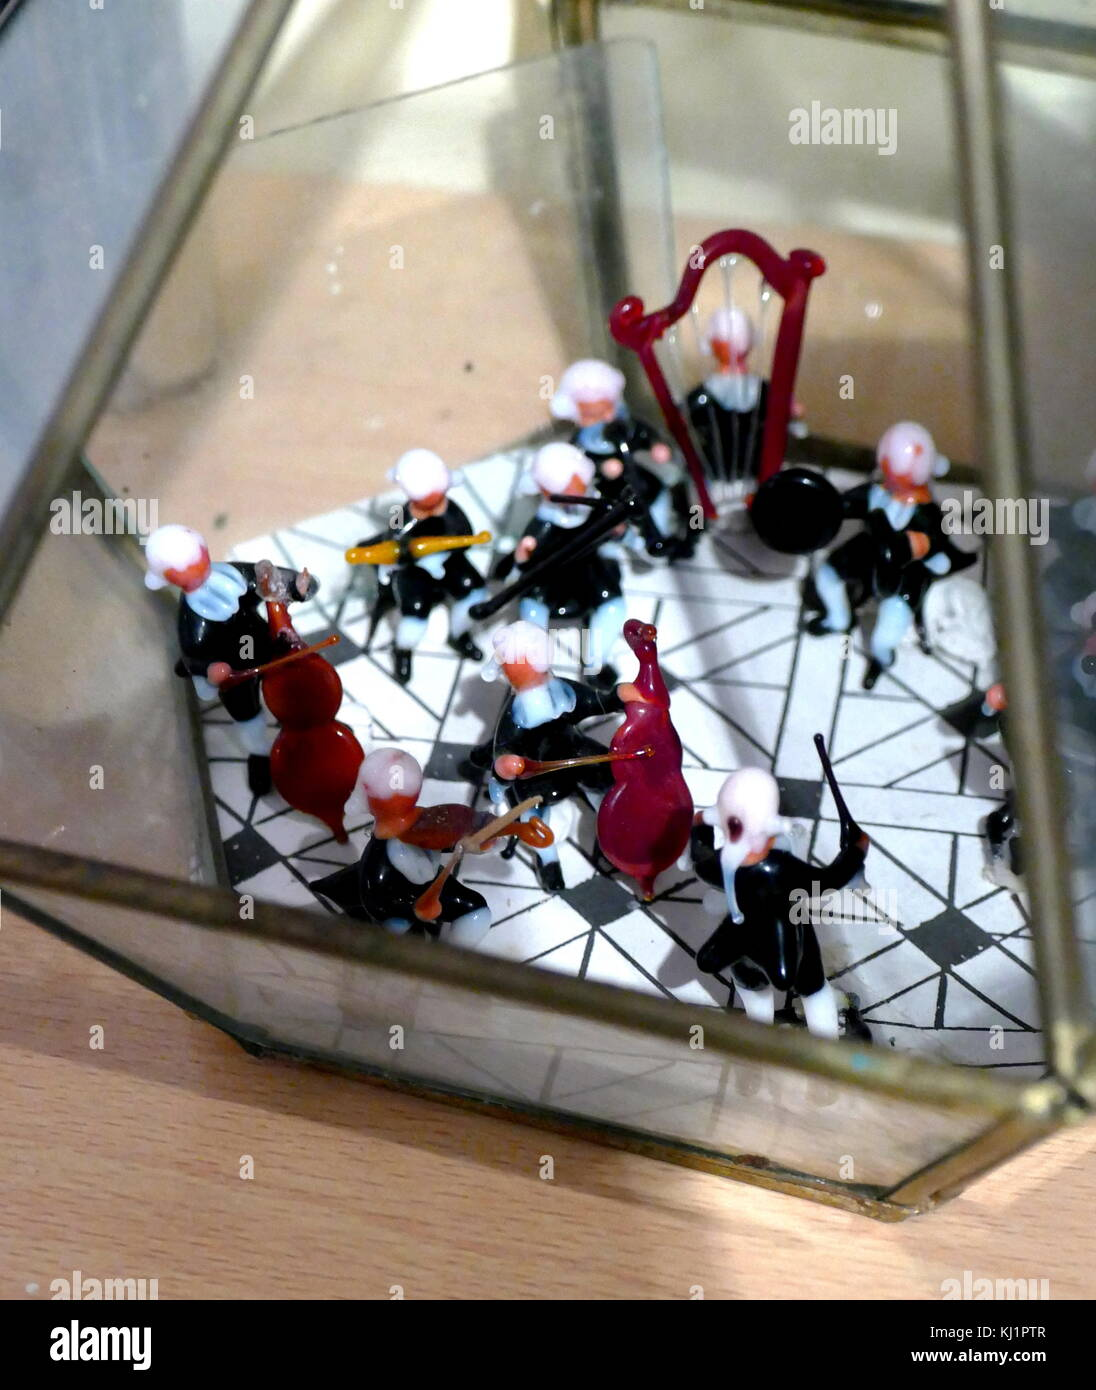 Miniature Vivaldi Orchestra made up of glass musicians scaled for a Dolls House, Venetian, Late 19th century - Stock Image